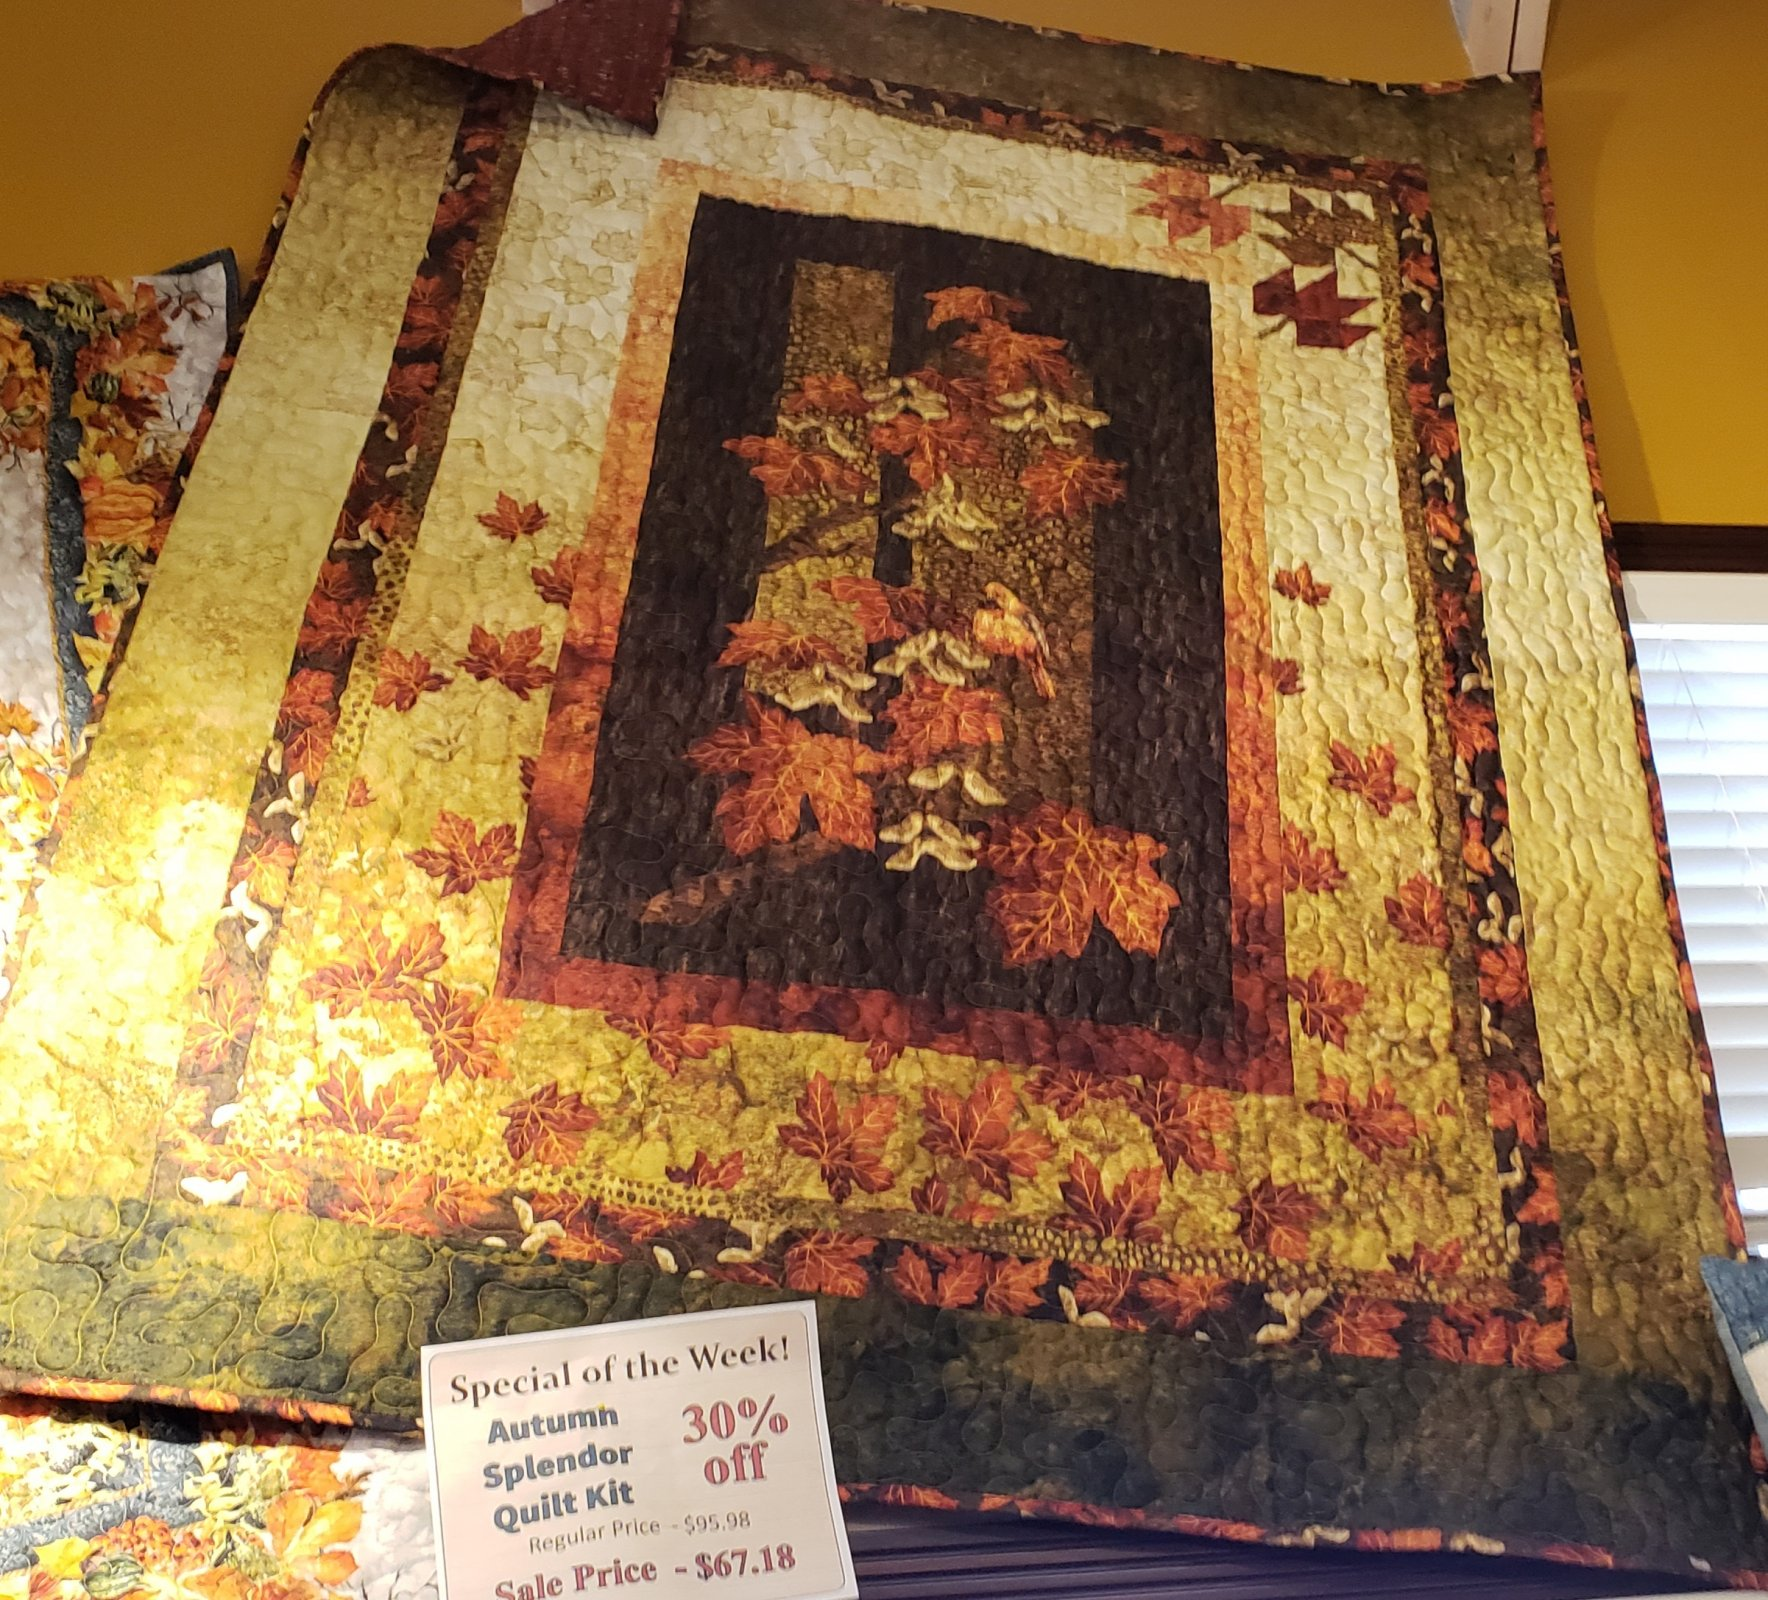 Autumn Splendor RED Throw Kit 58 x 76